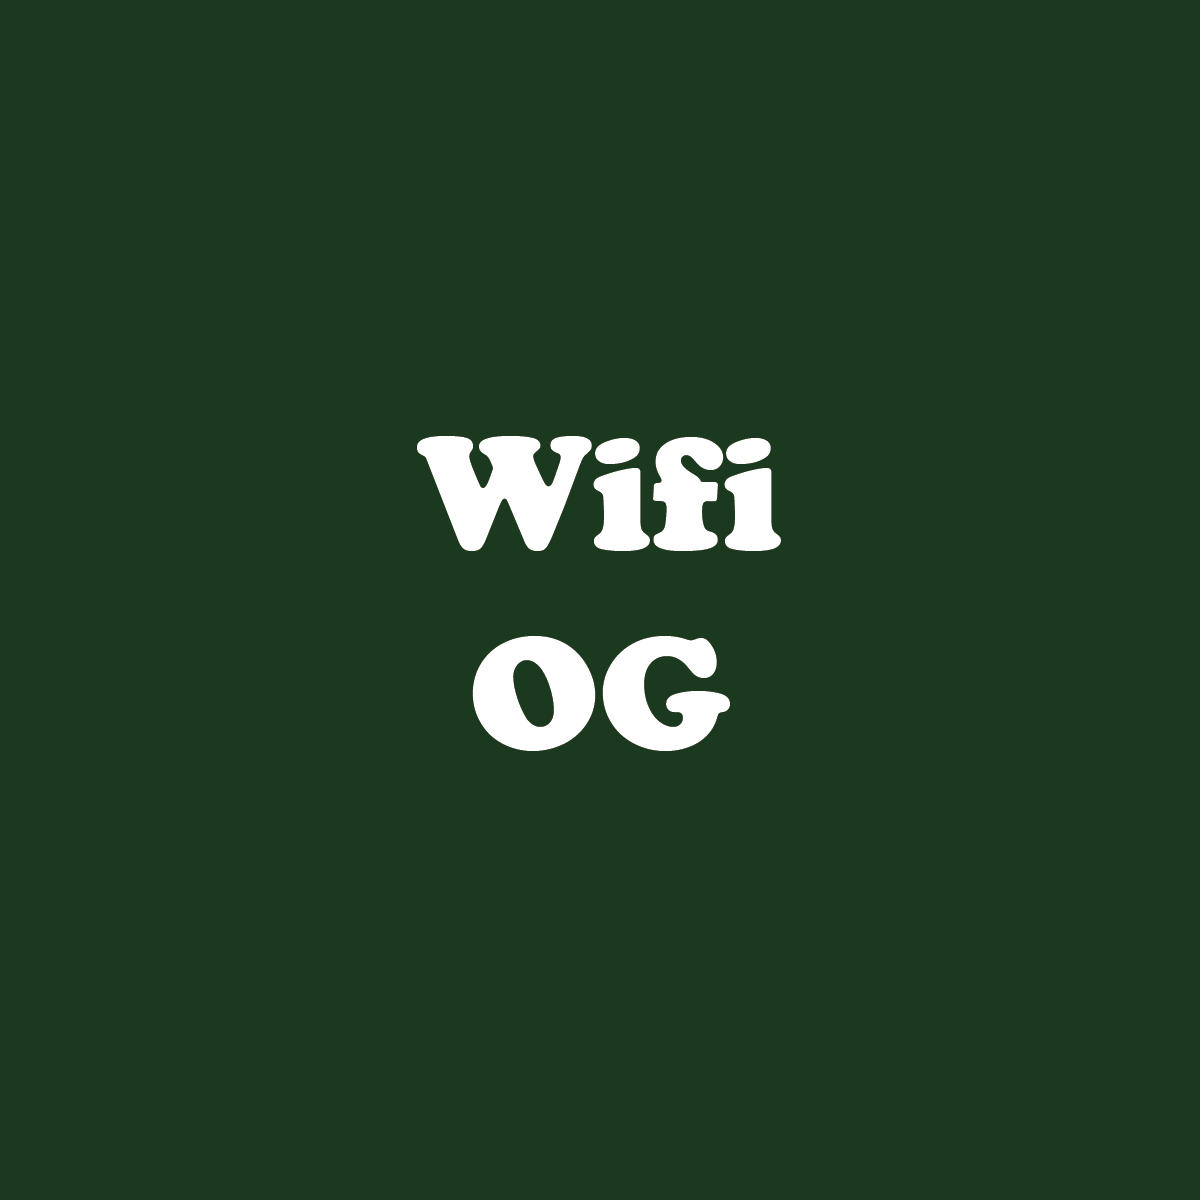 WifiOG.png